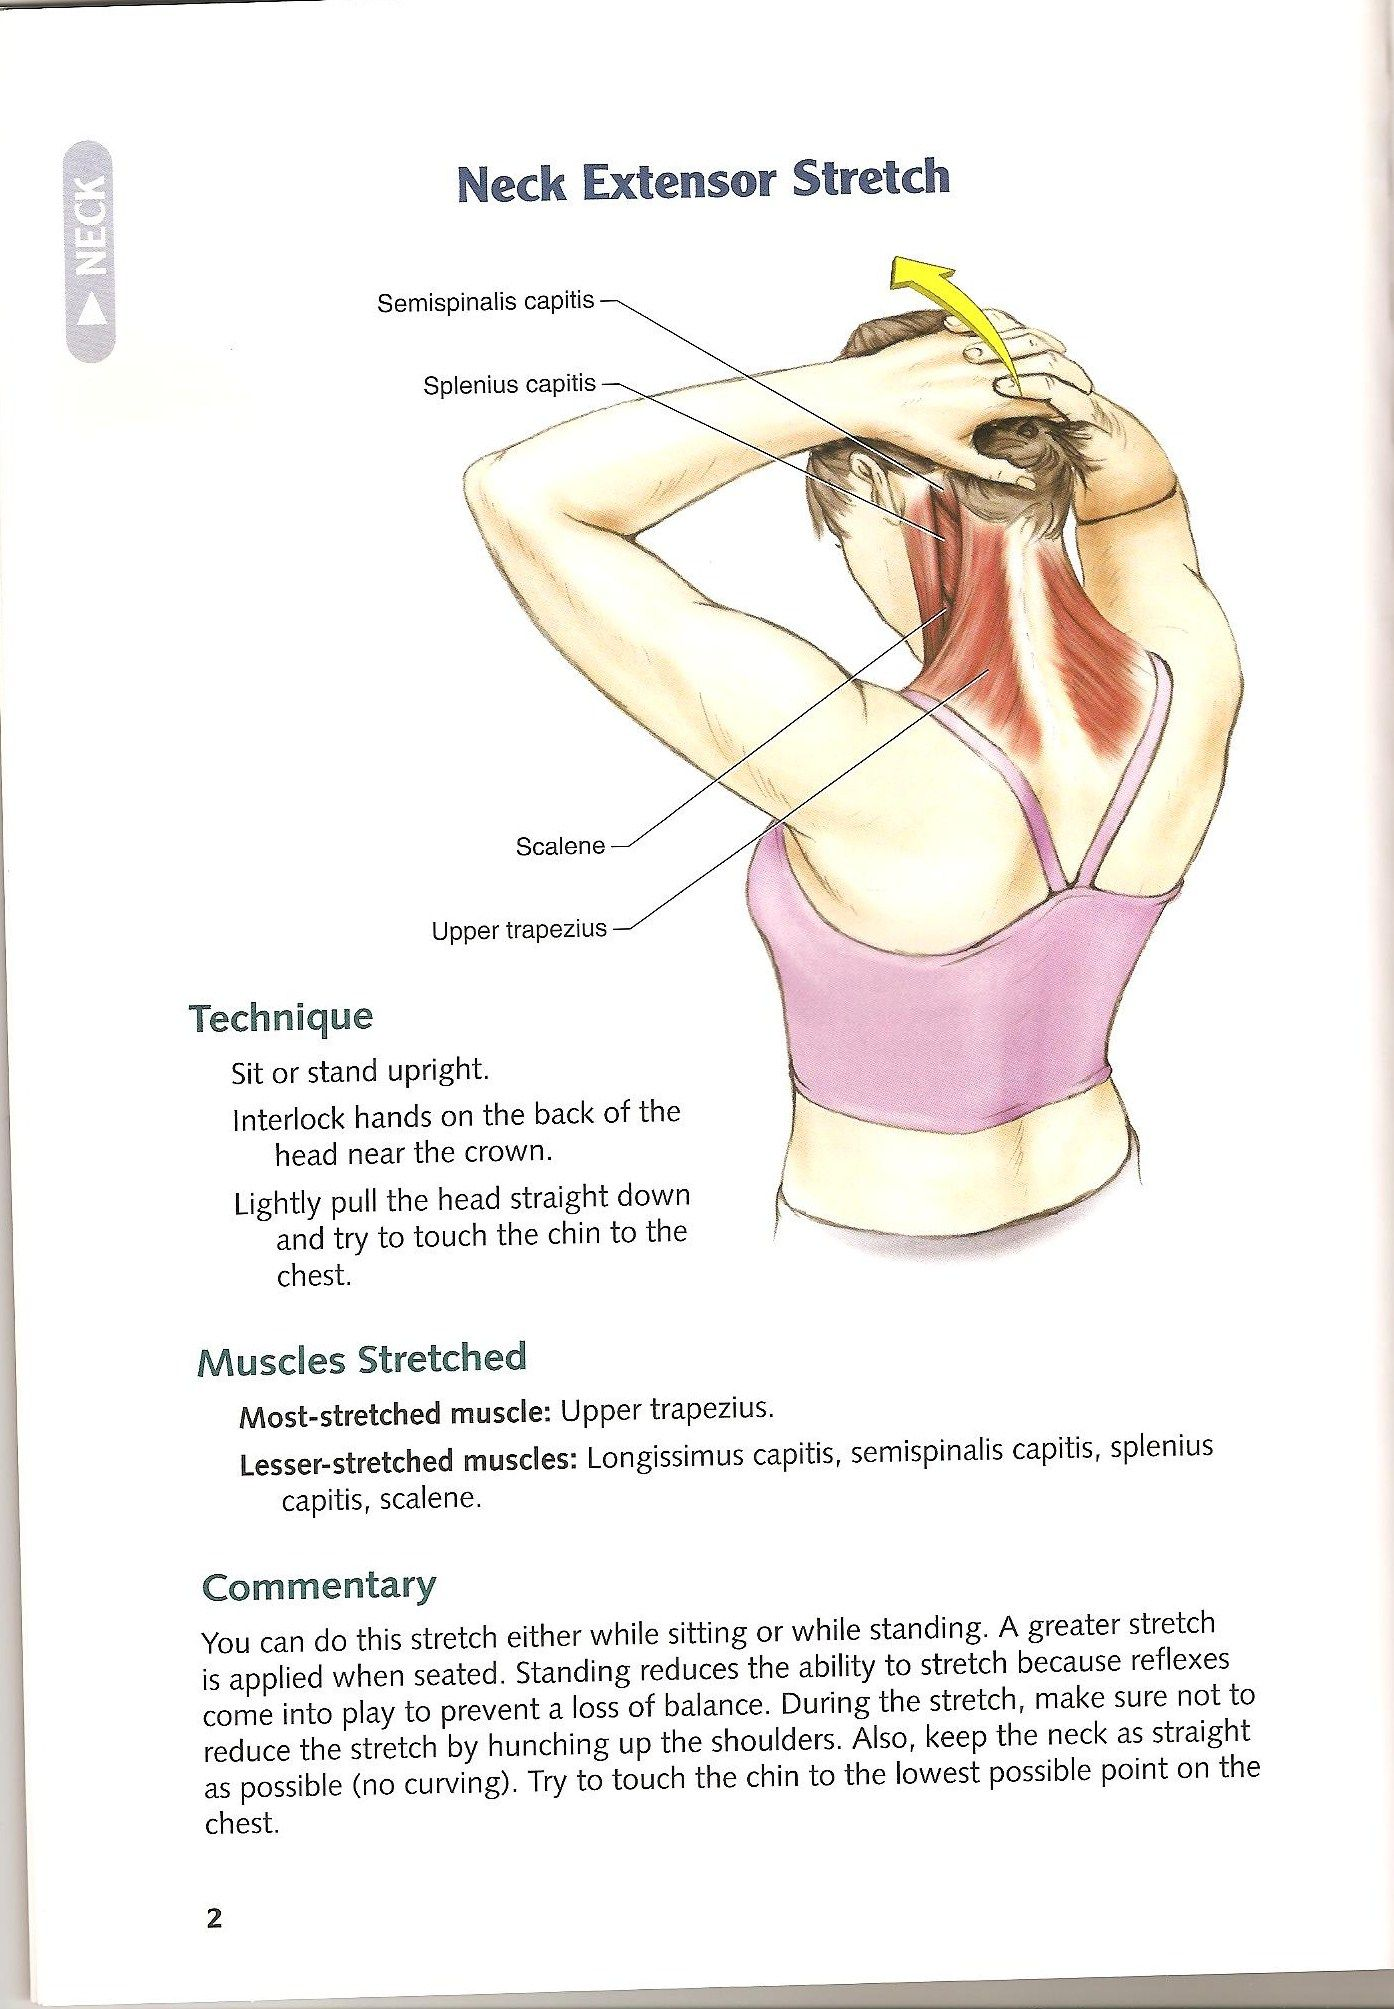 Posterior Neck Stretch Celtic Knots Massage With Images